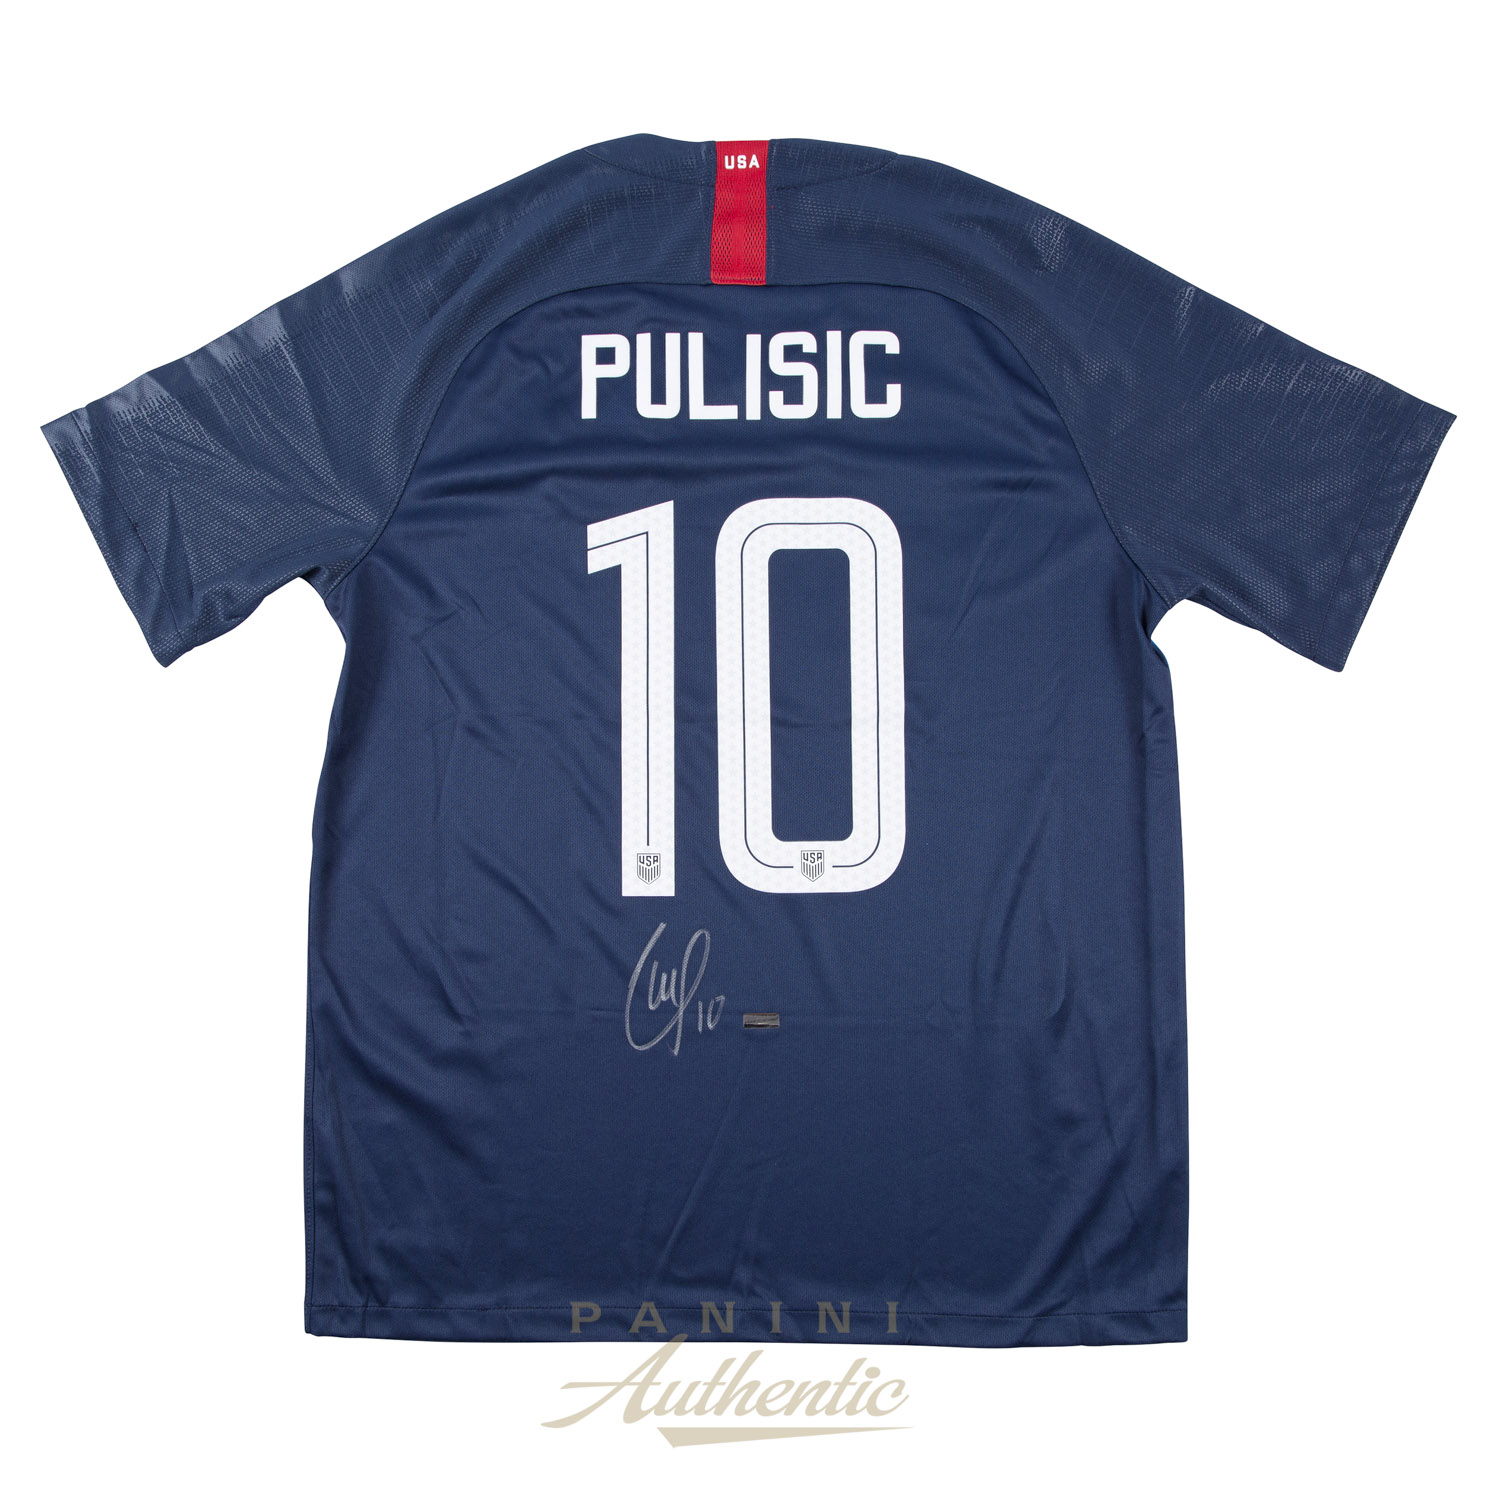 best service 69e9a a0ae0 Christian Pulisic Autographed 2018 Nike US Men's National ...